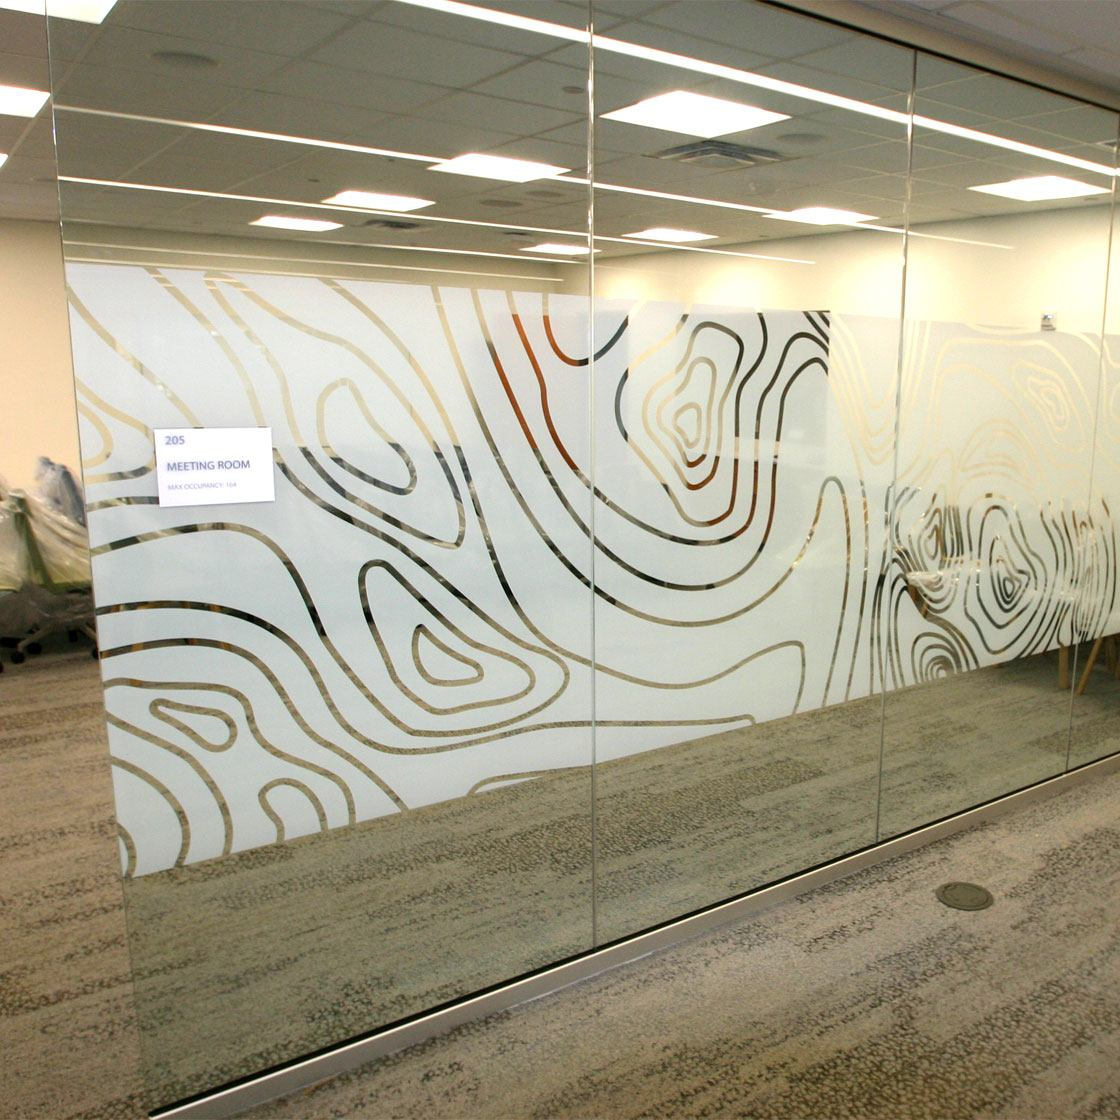 Library conference room, with decorative etchings on the glass wall.